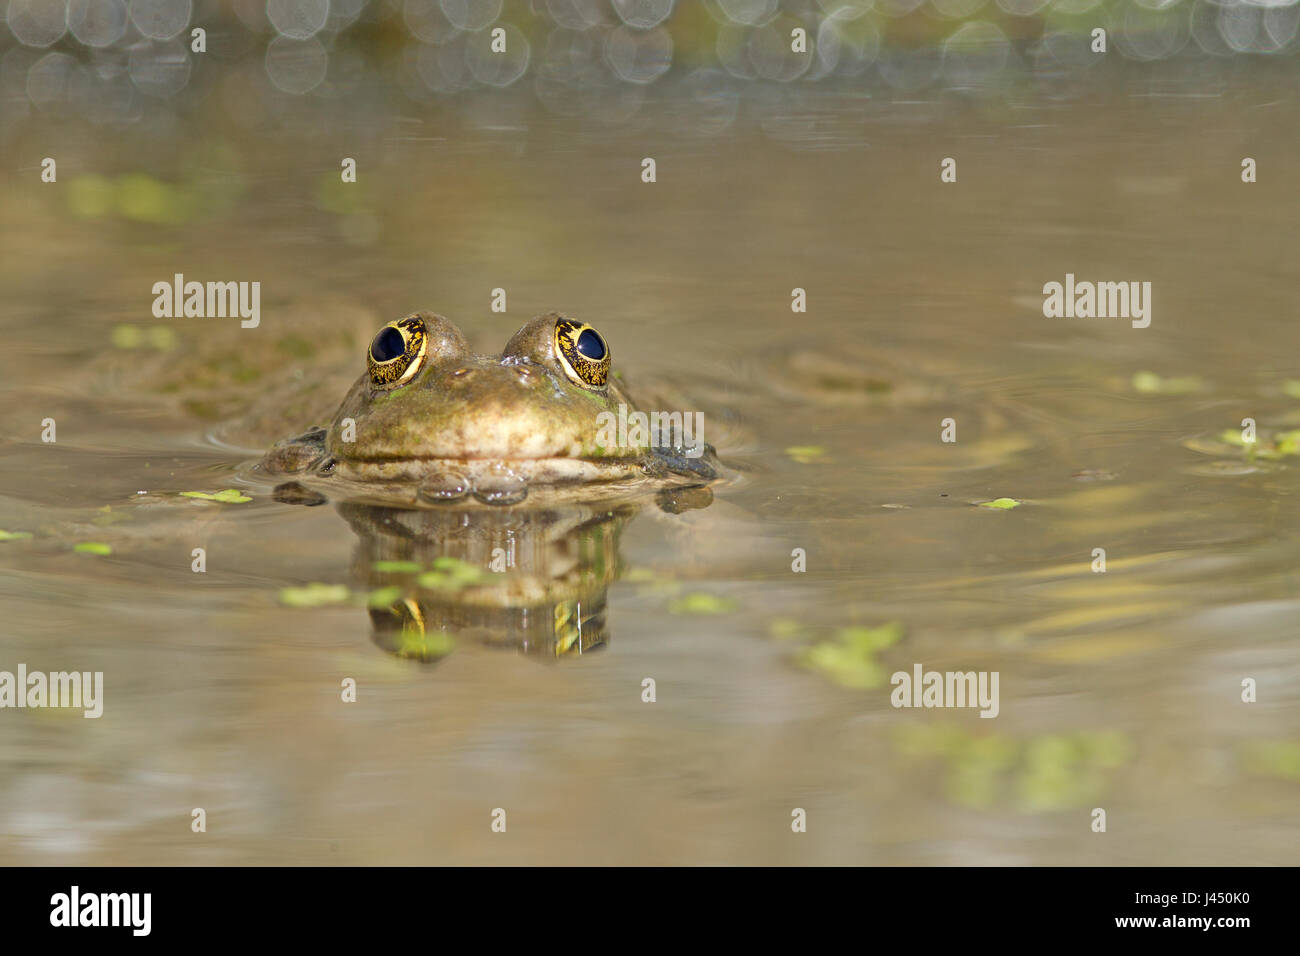 marsh frog in the water Stock Photo